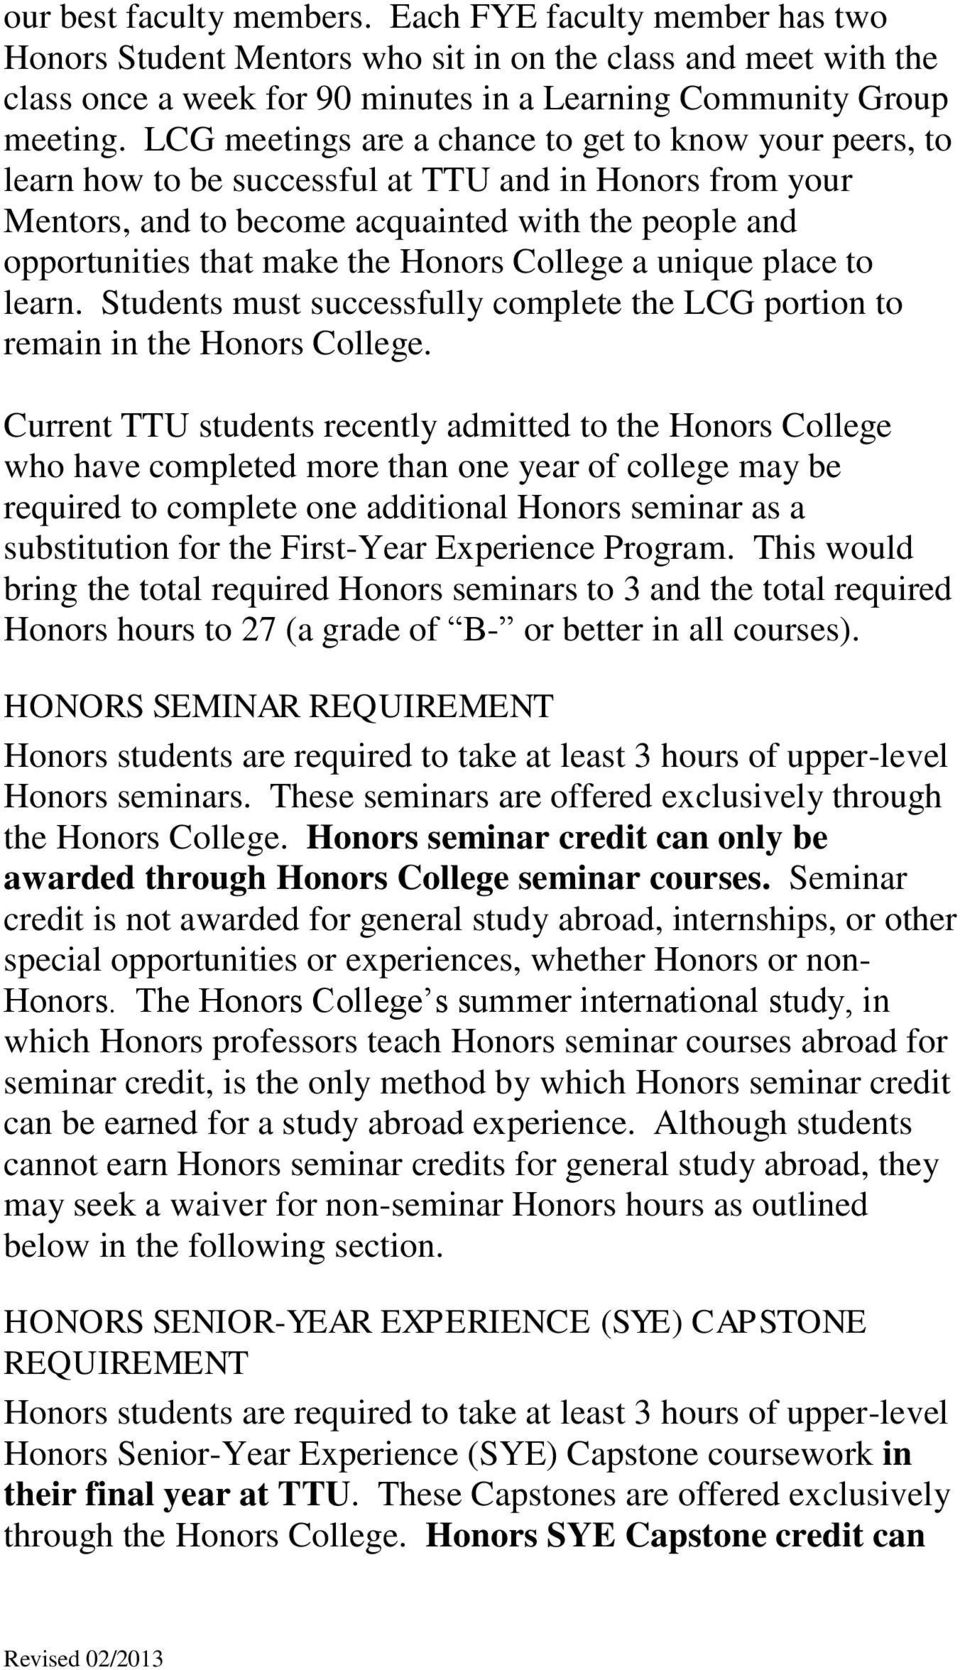 Honors College a unique place to learn. Students must successfully complete the LCG portion to remain in the Honors College.